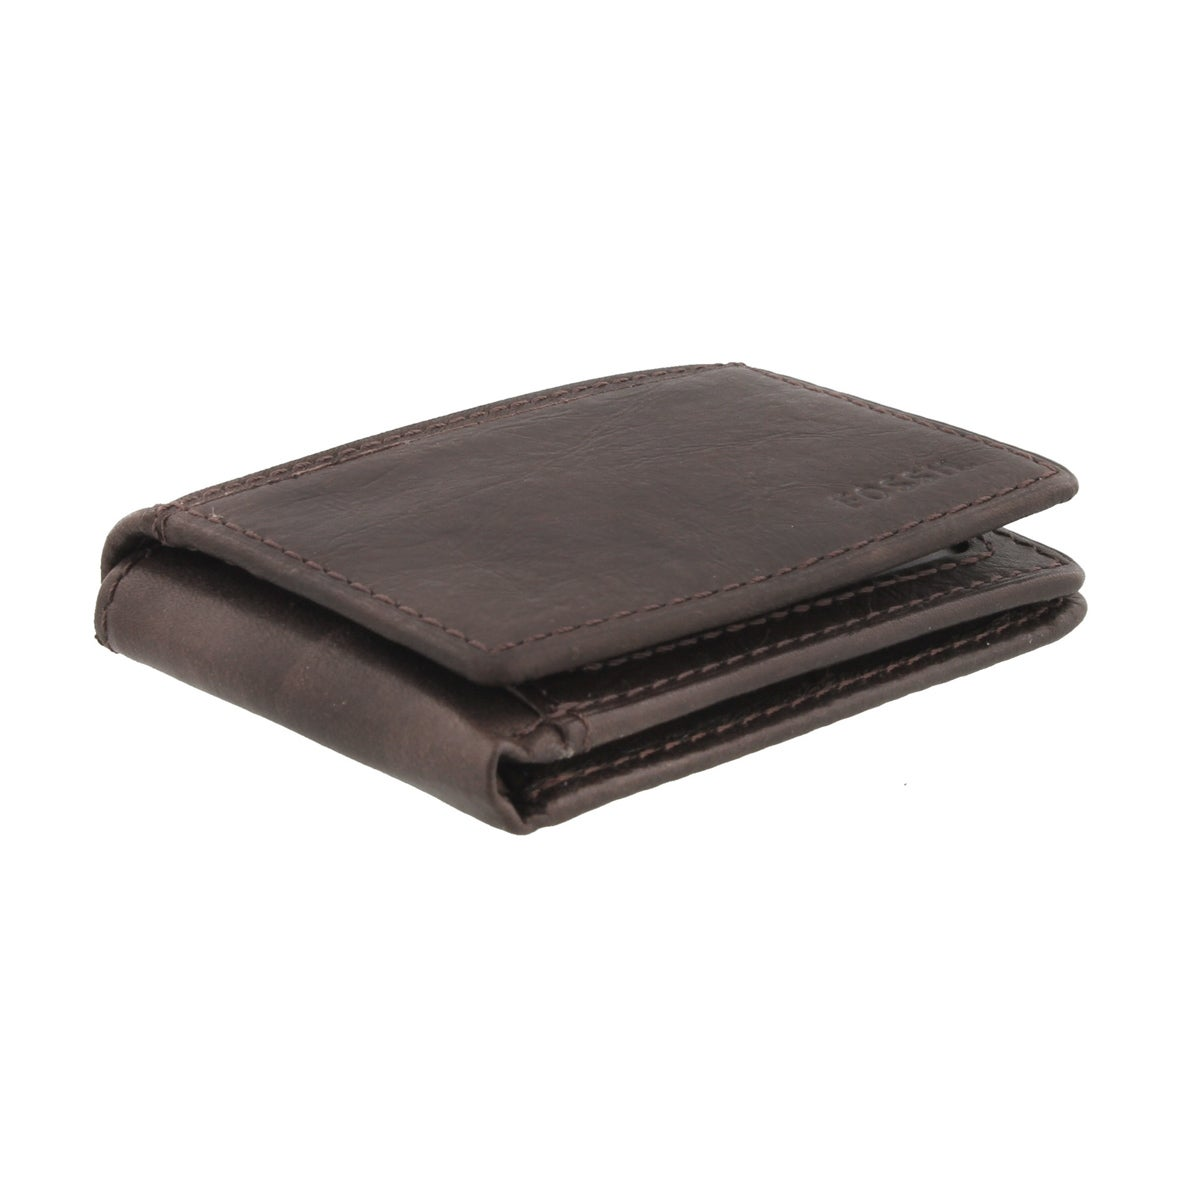 Mns Ingram Execufold brn leather wallet